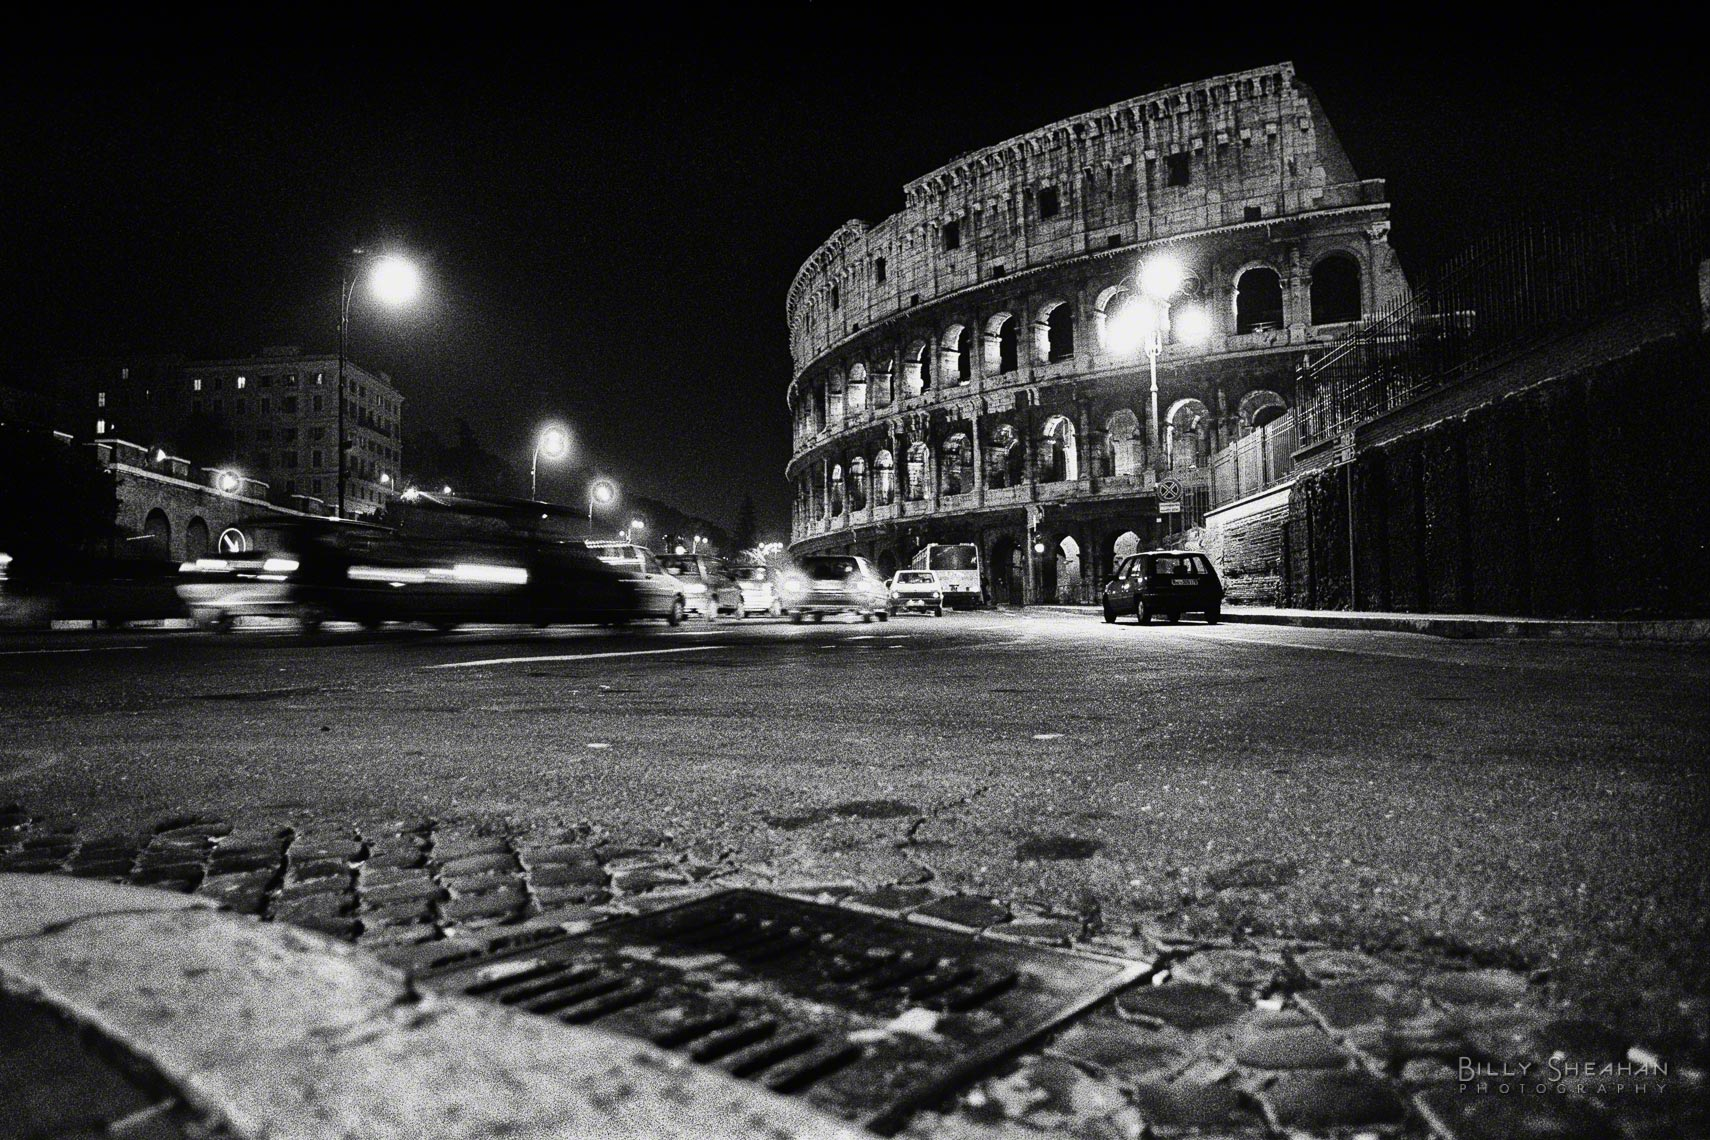 Sewer_Street_Coloseum_Rome_Italy-127_18_BW_D.jpg